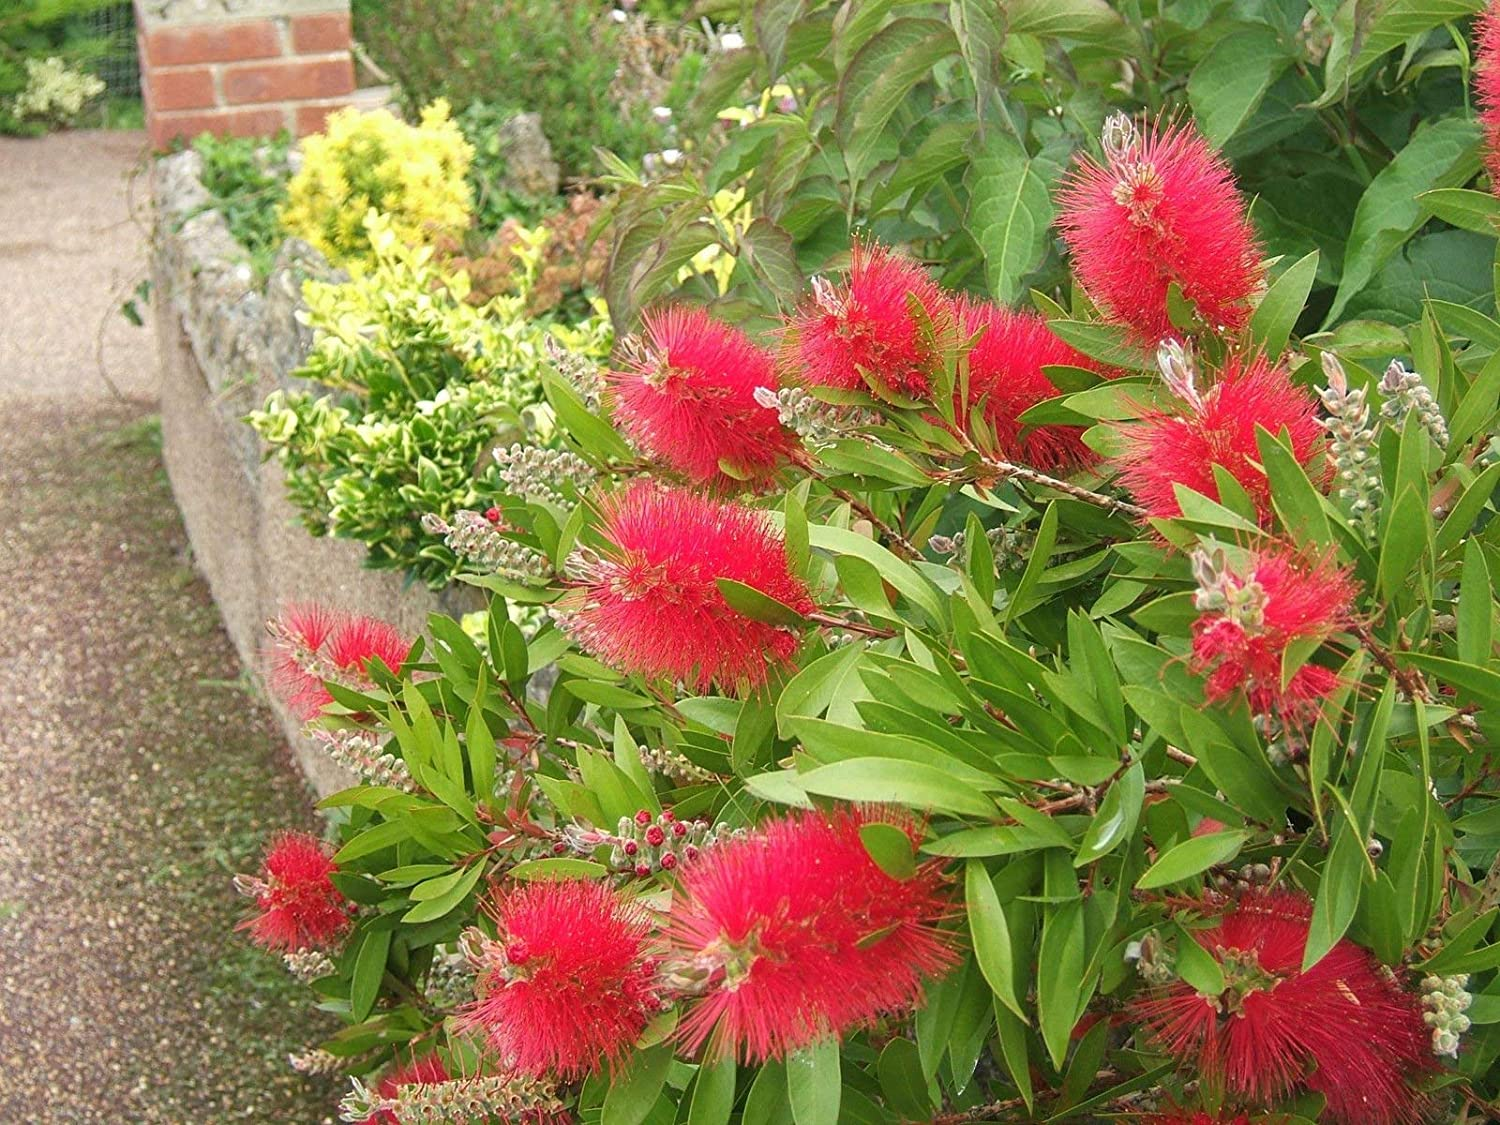 Bottle brush aren't picky about the soil type as long as it is well drained. If the soil is very poor, enrich with compost at planting time.